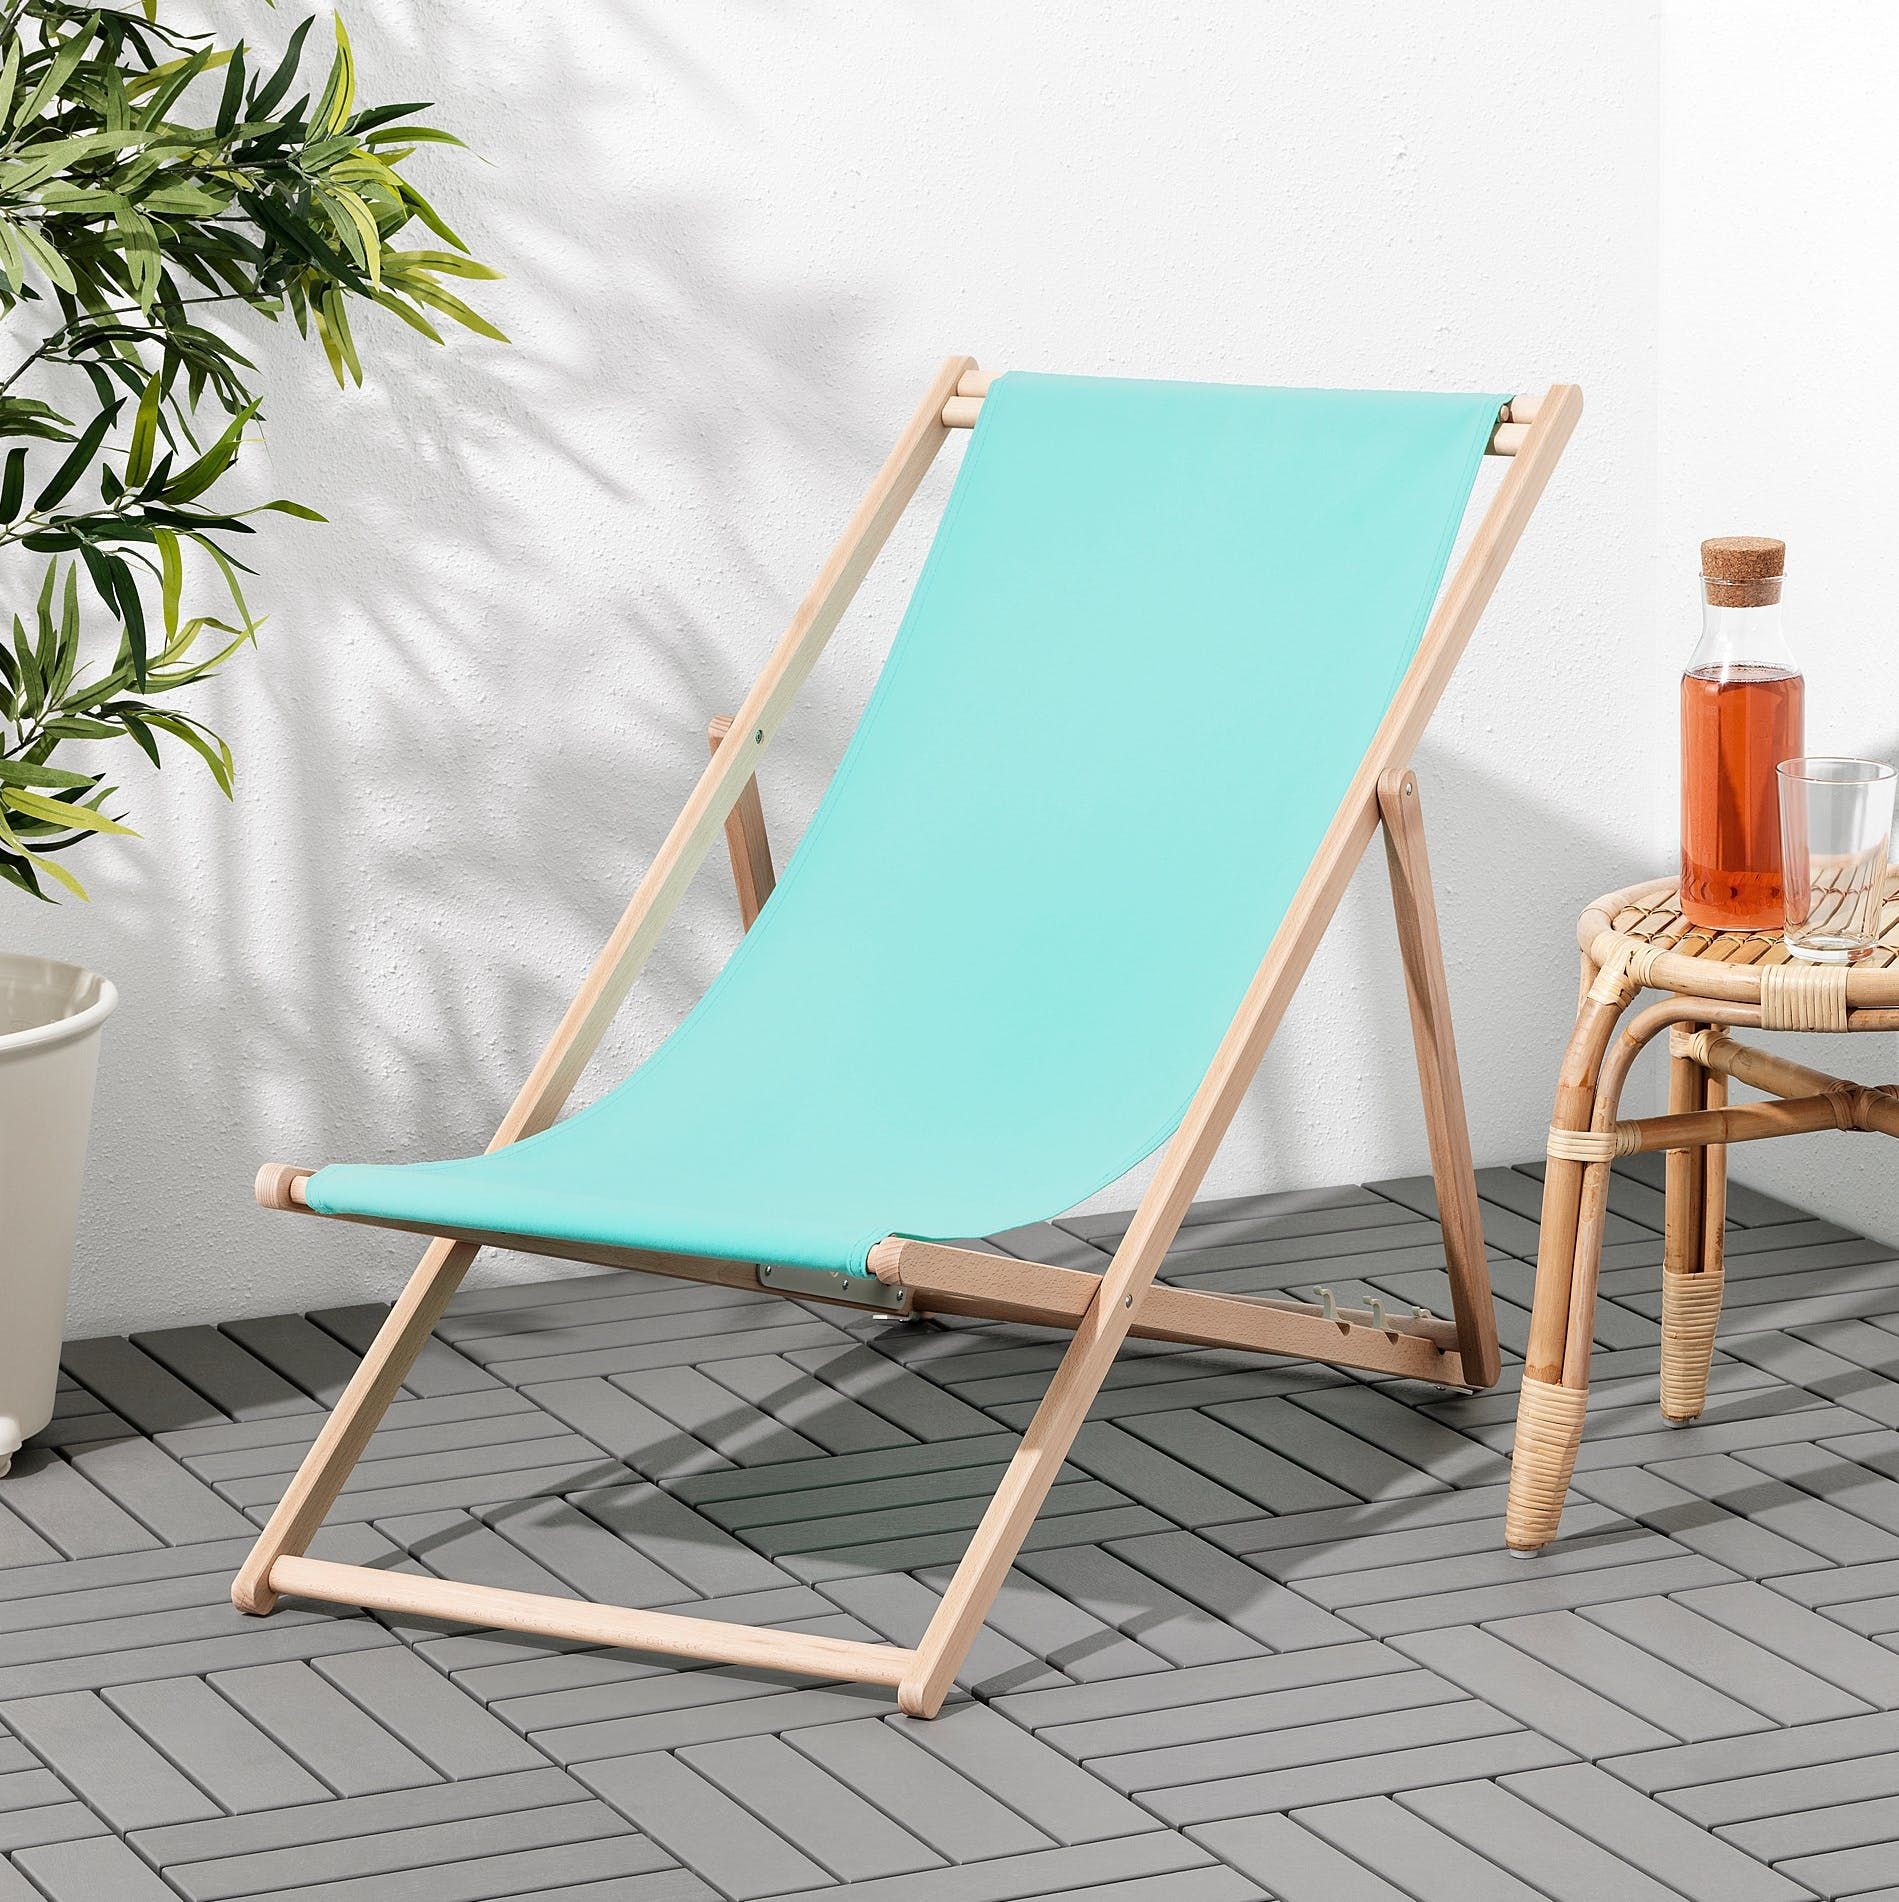 The Cutest Ikea Patio Items Under $100 You Need For Summer ... encequiconcerne Transat Jardin - Ikea